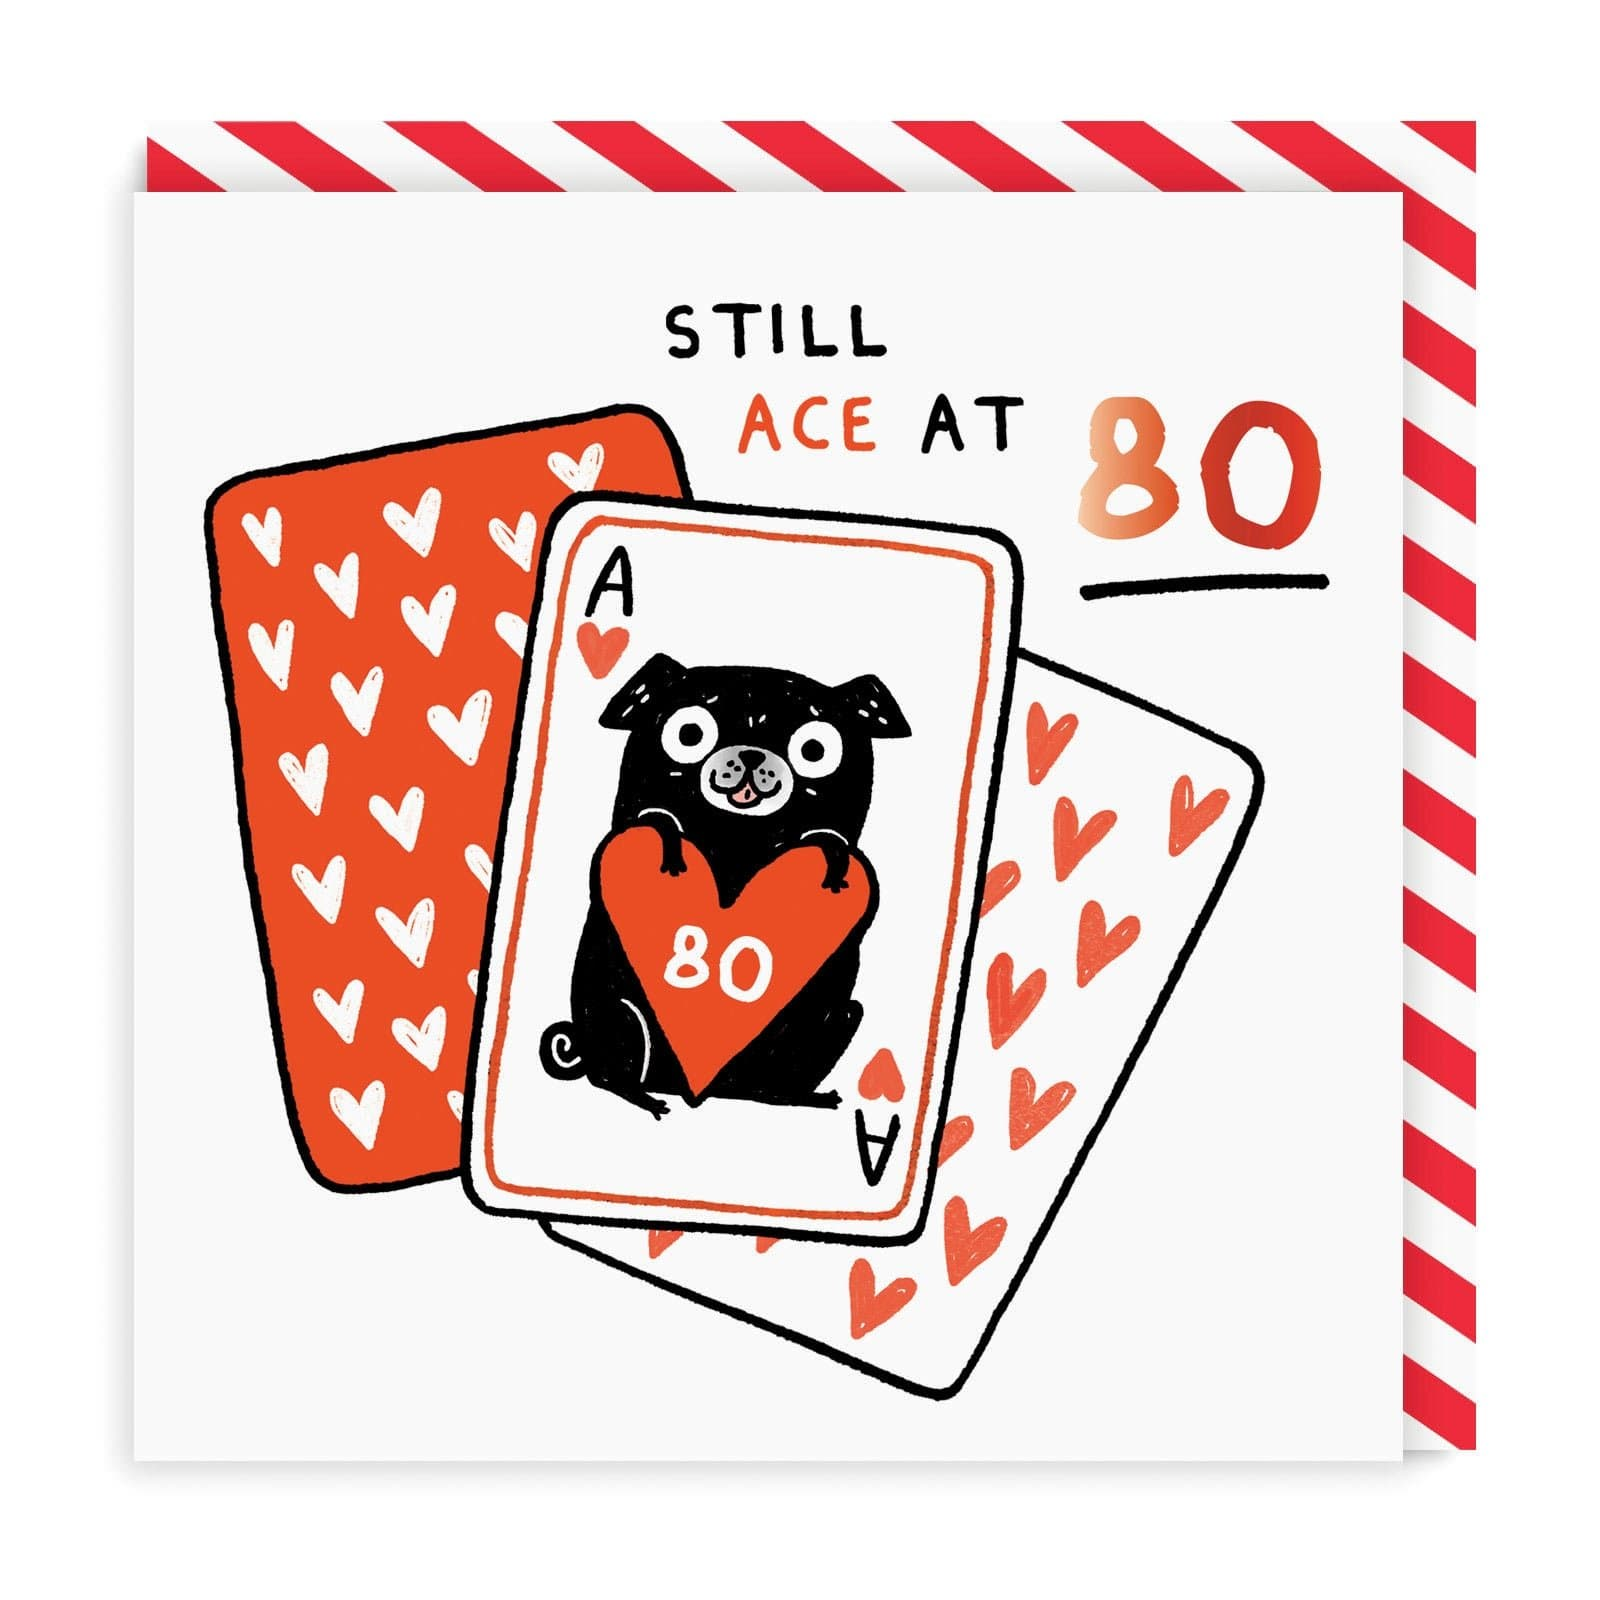 White birthday card with red and black illustrated playing cards and pug holding red heart, saying 'Still Ace at 80' wording